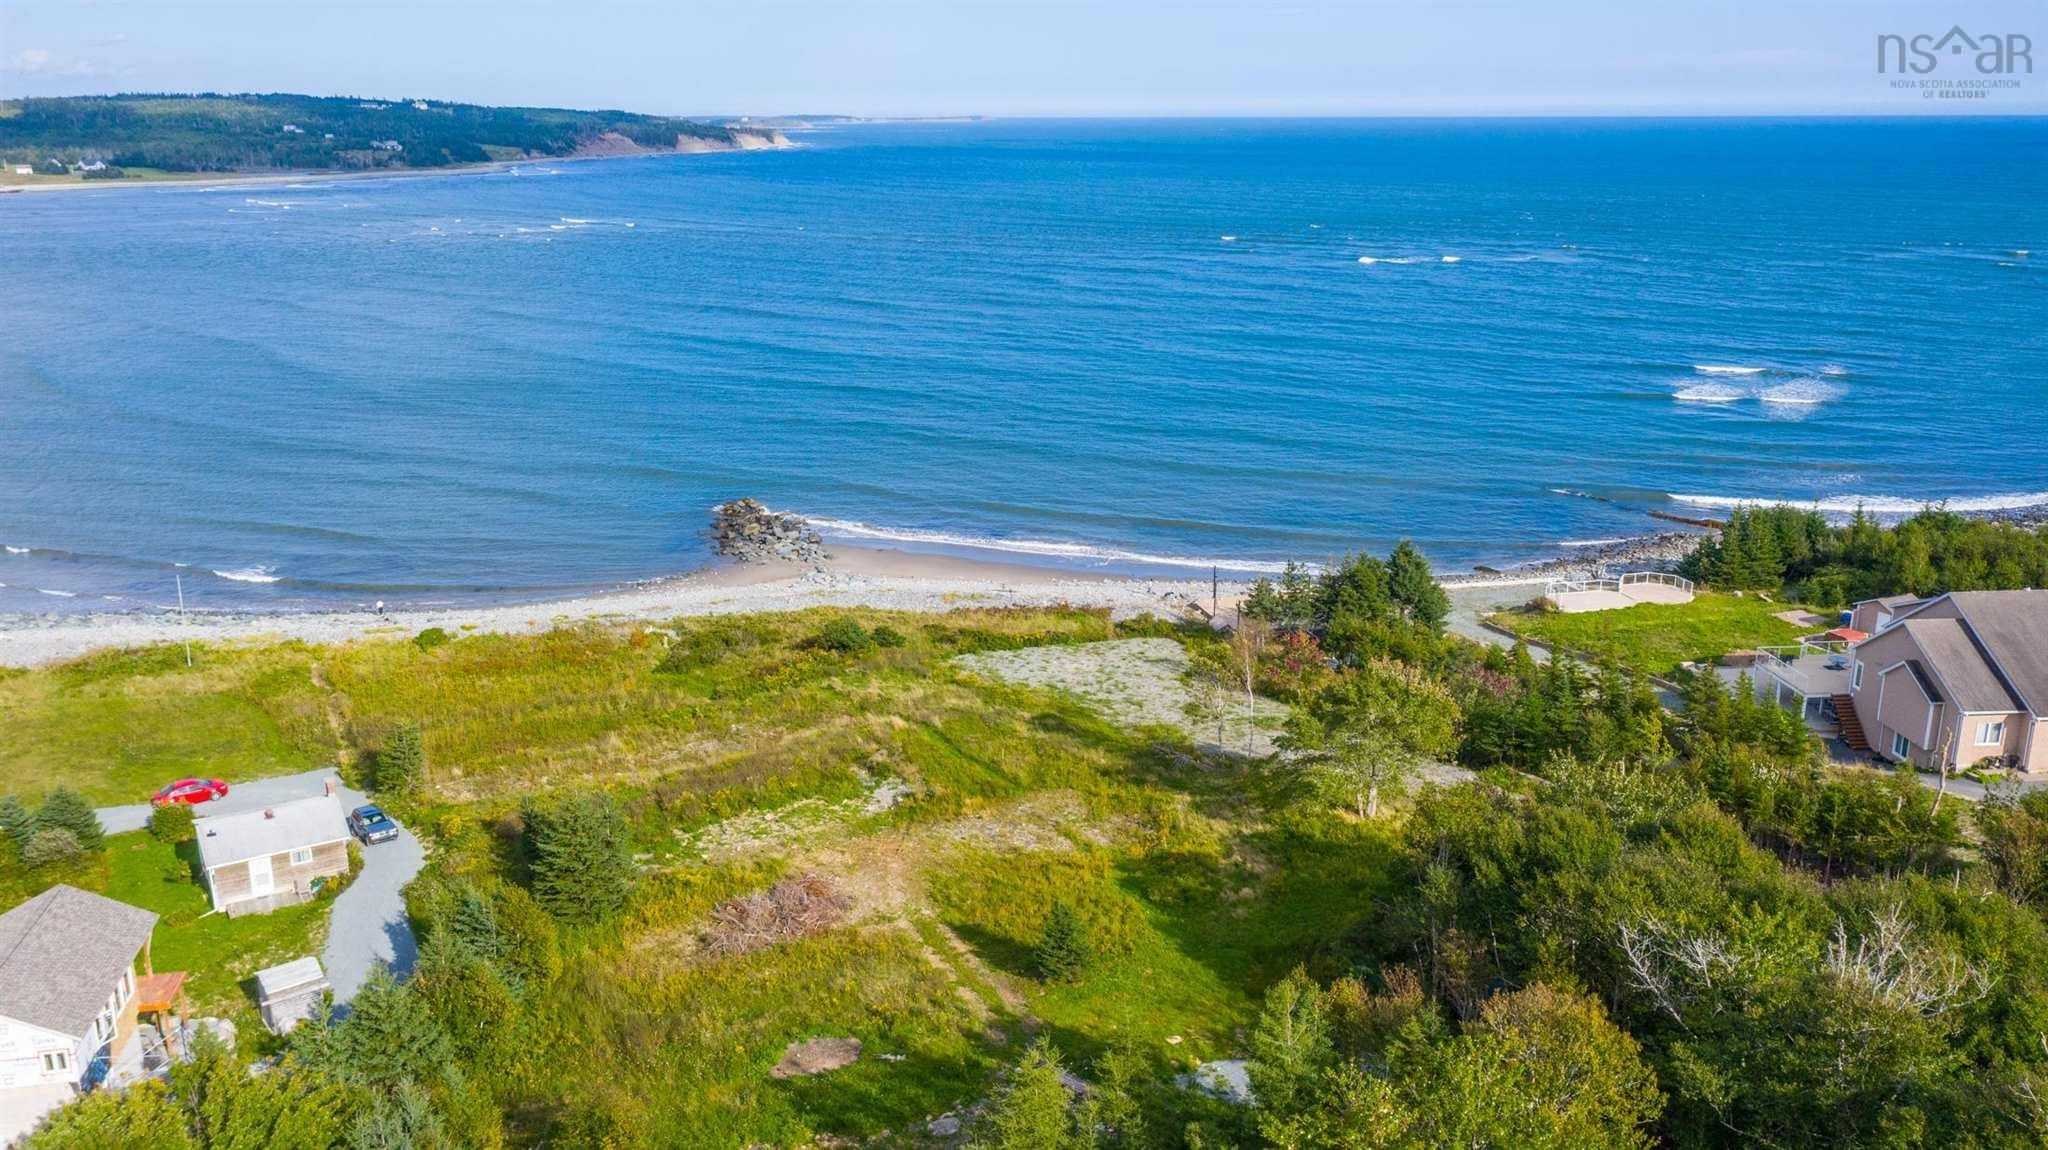 Main Photo: Lot ABCD B2 Cow Bay Road in Cow Bay: 11-Dartmouth Woodside, Eastern Passage, Cow Bay Vacant Land for sale (Halifax-Dartmouth)  : MLS®# 202123577